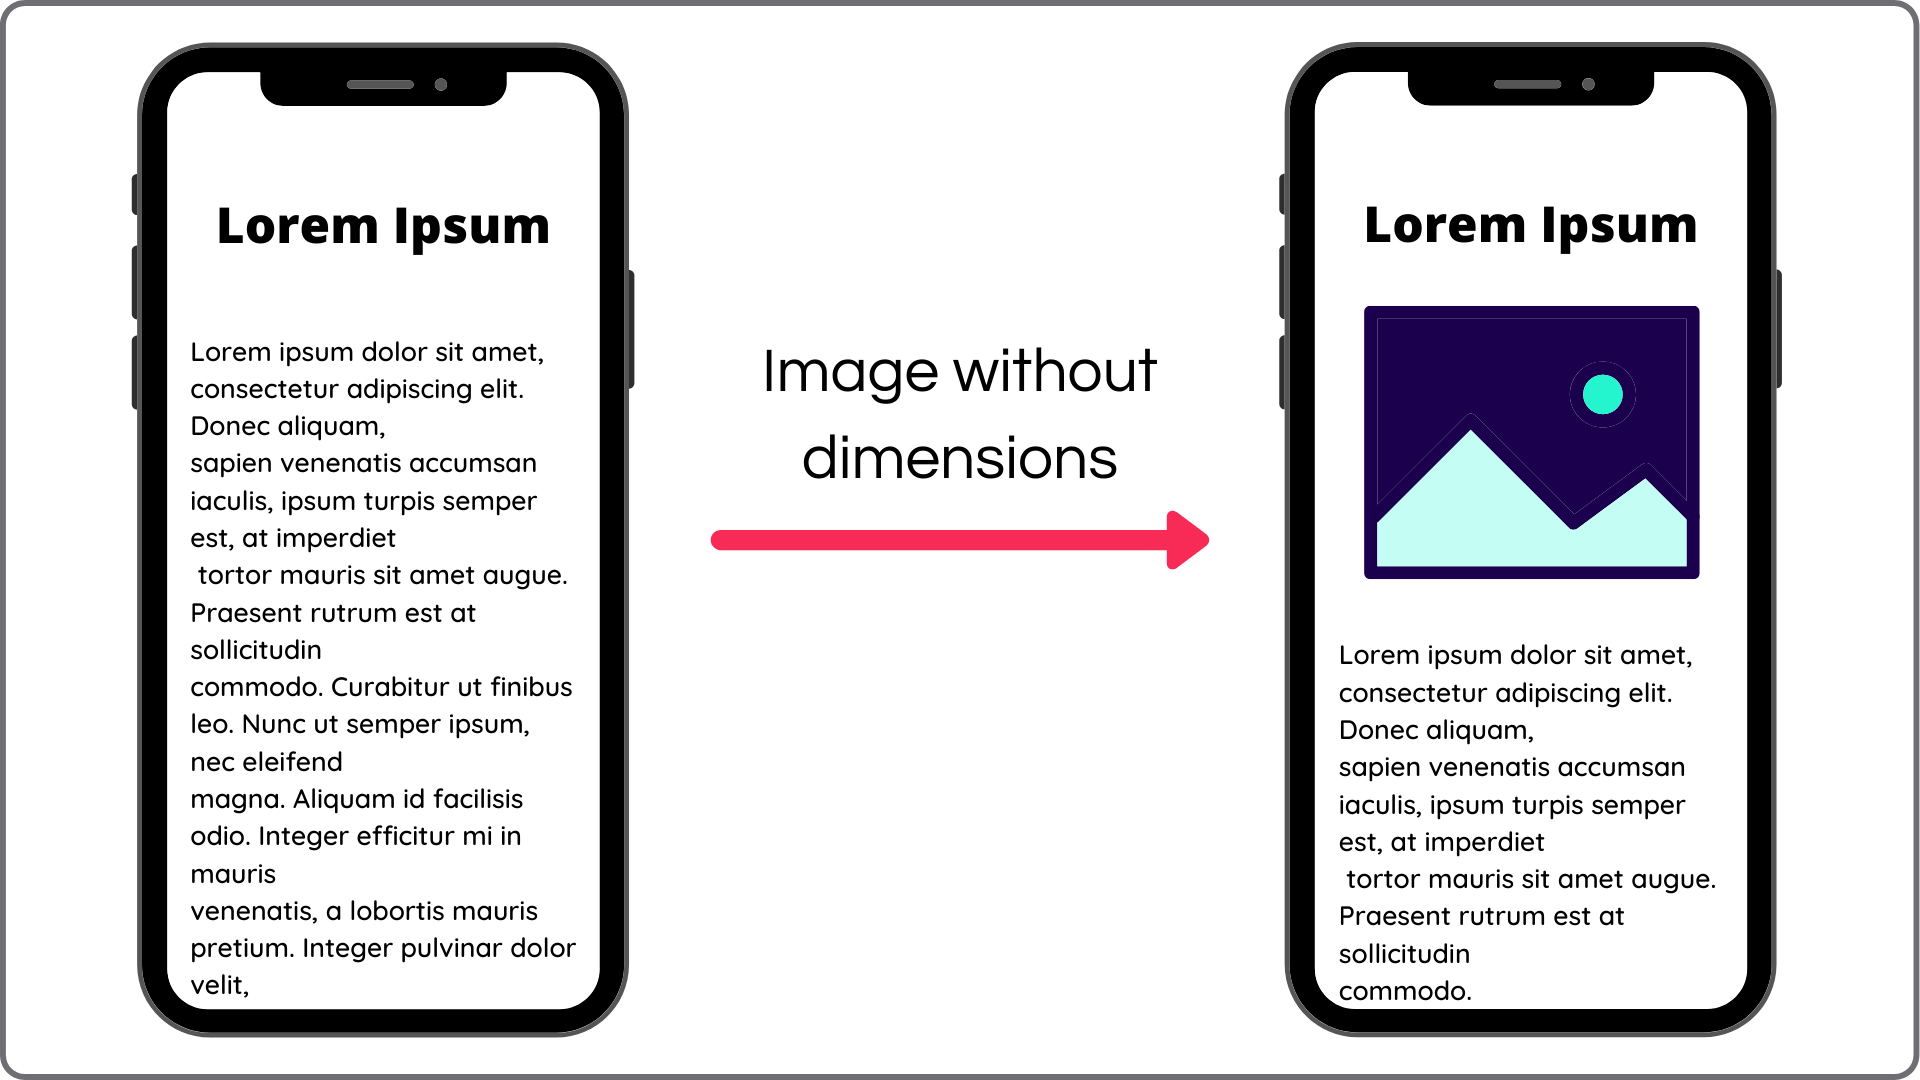 Loading image without dimensions